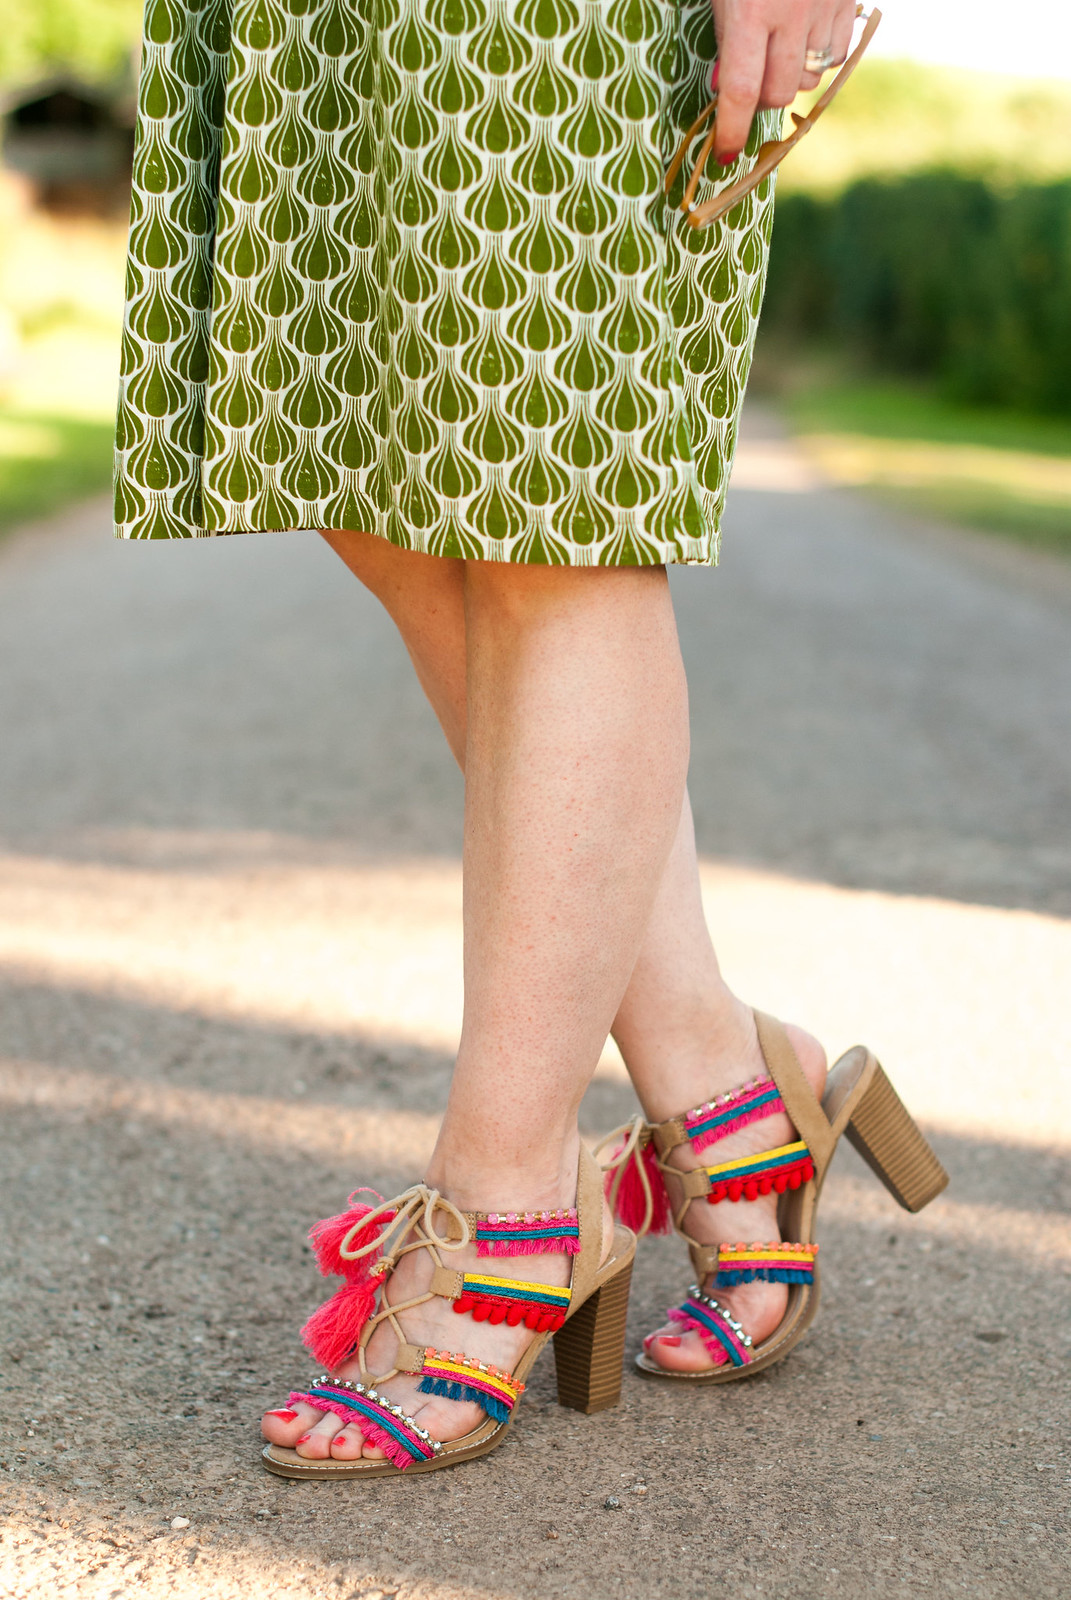 Hot weather style: Printed green summer dress pompom and tassel embellished sandals | Not Dressed As Lamb, over 40 style